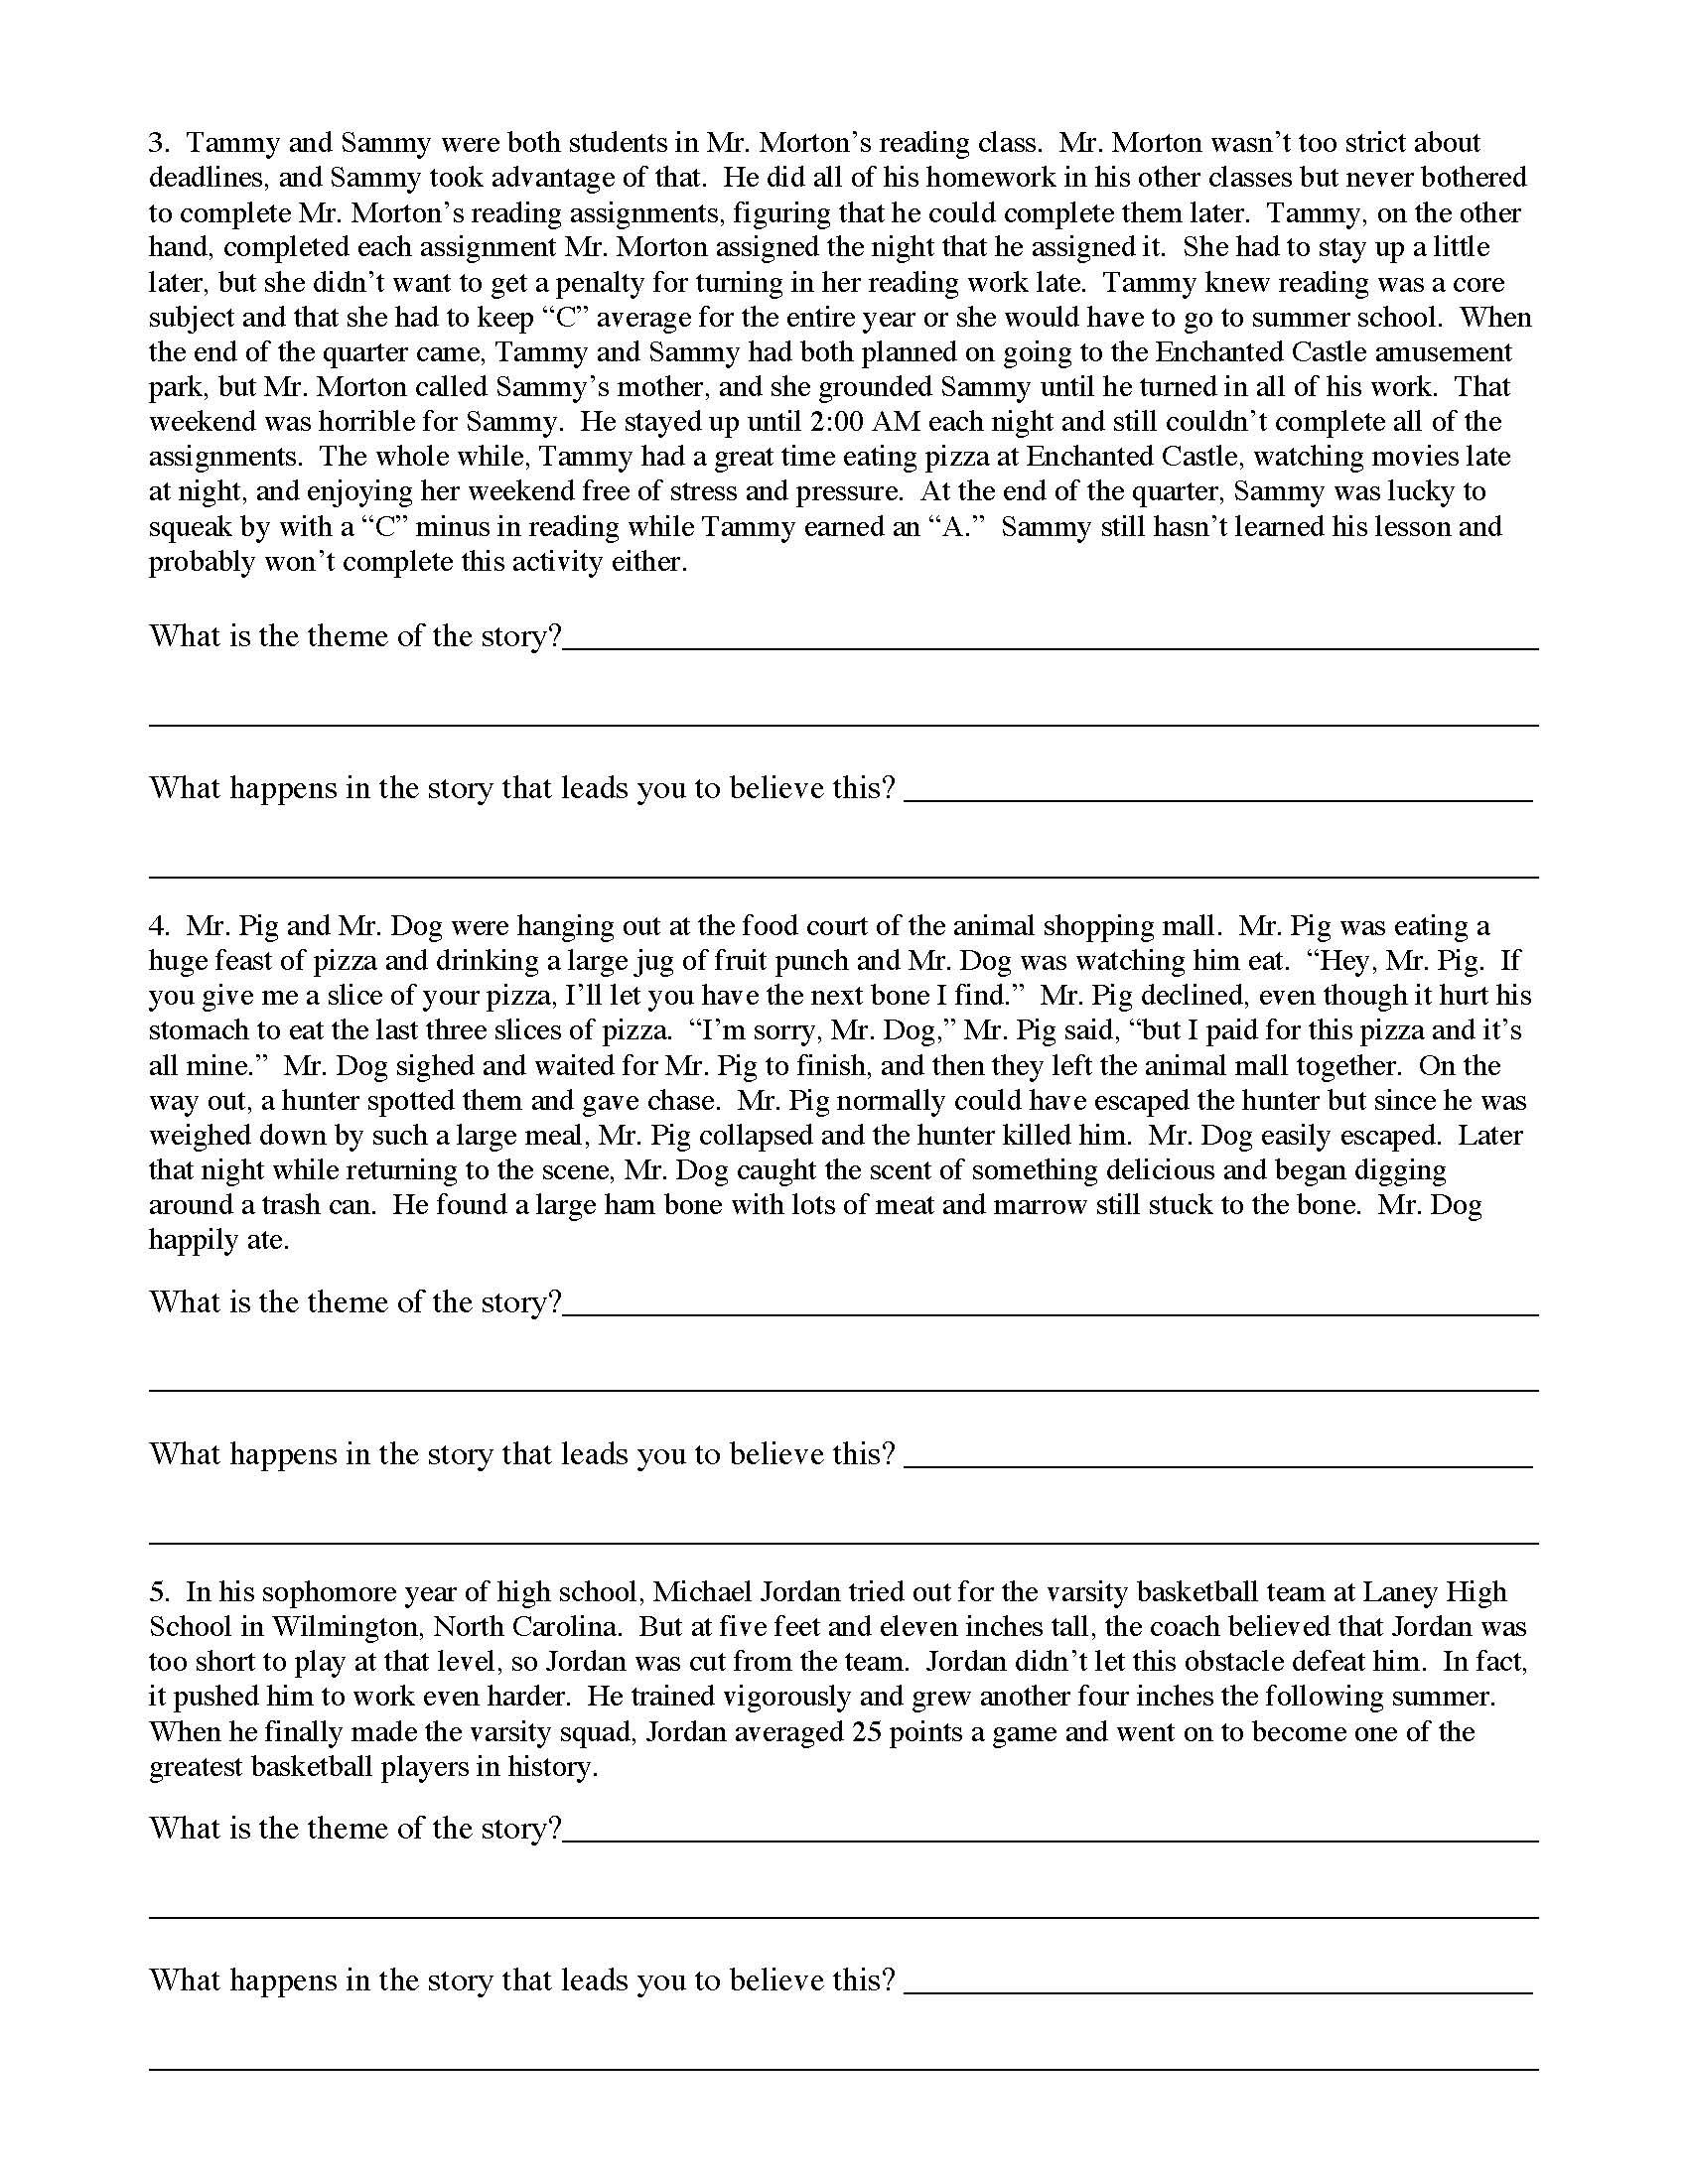 - Theme Worksheet 1 Preview